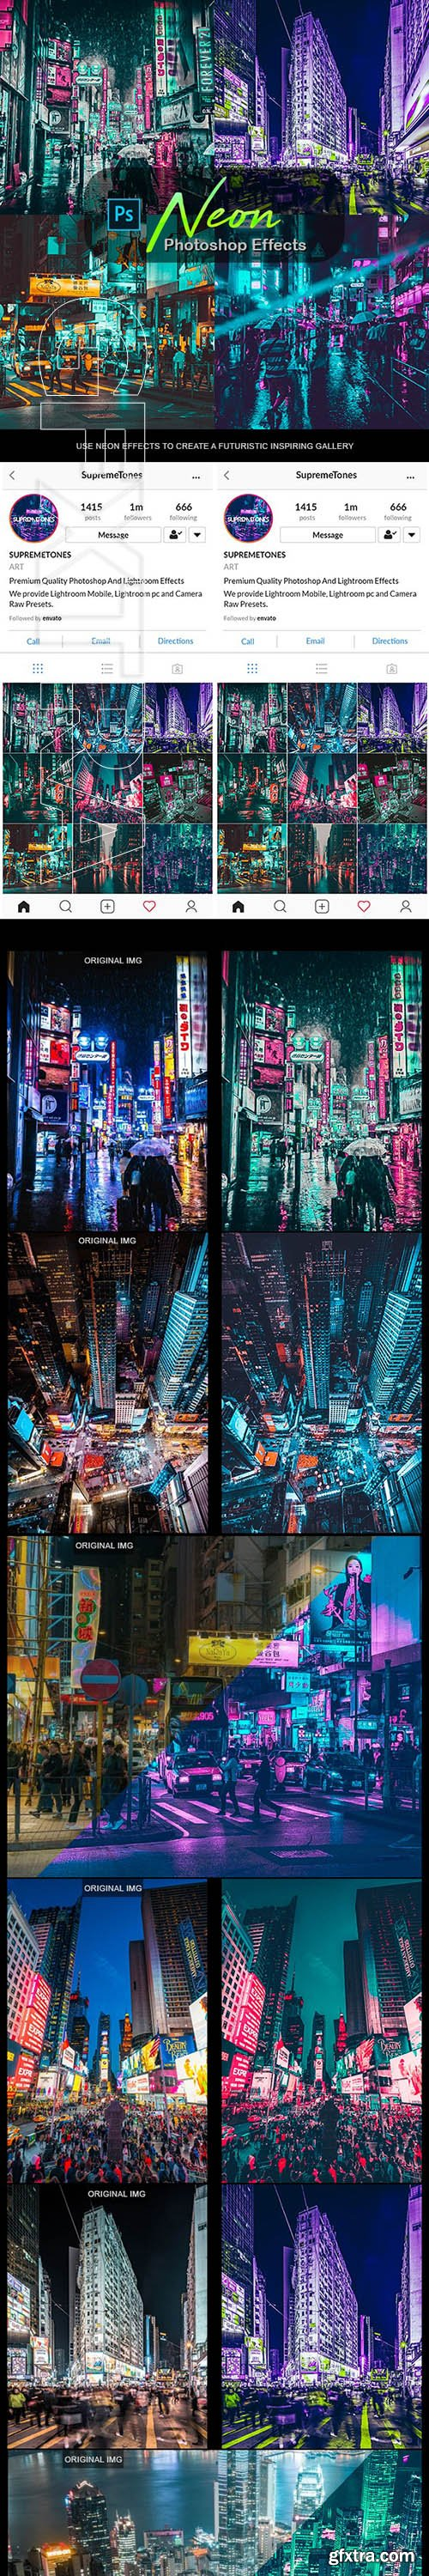 GraphicRiver - Neon Photoshop Effects 24736828